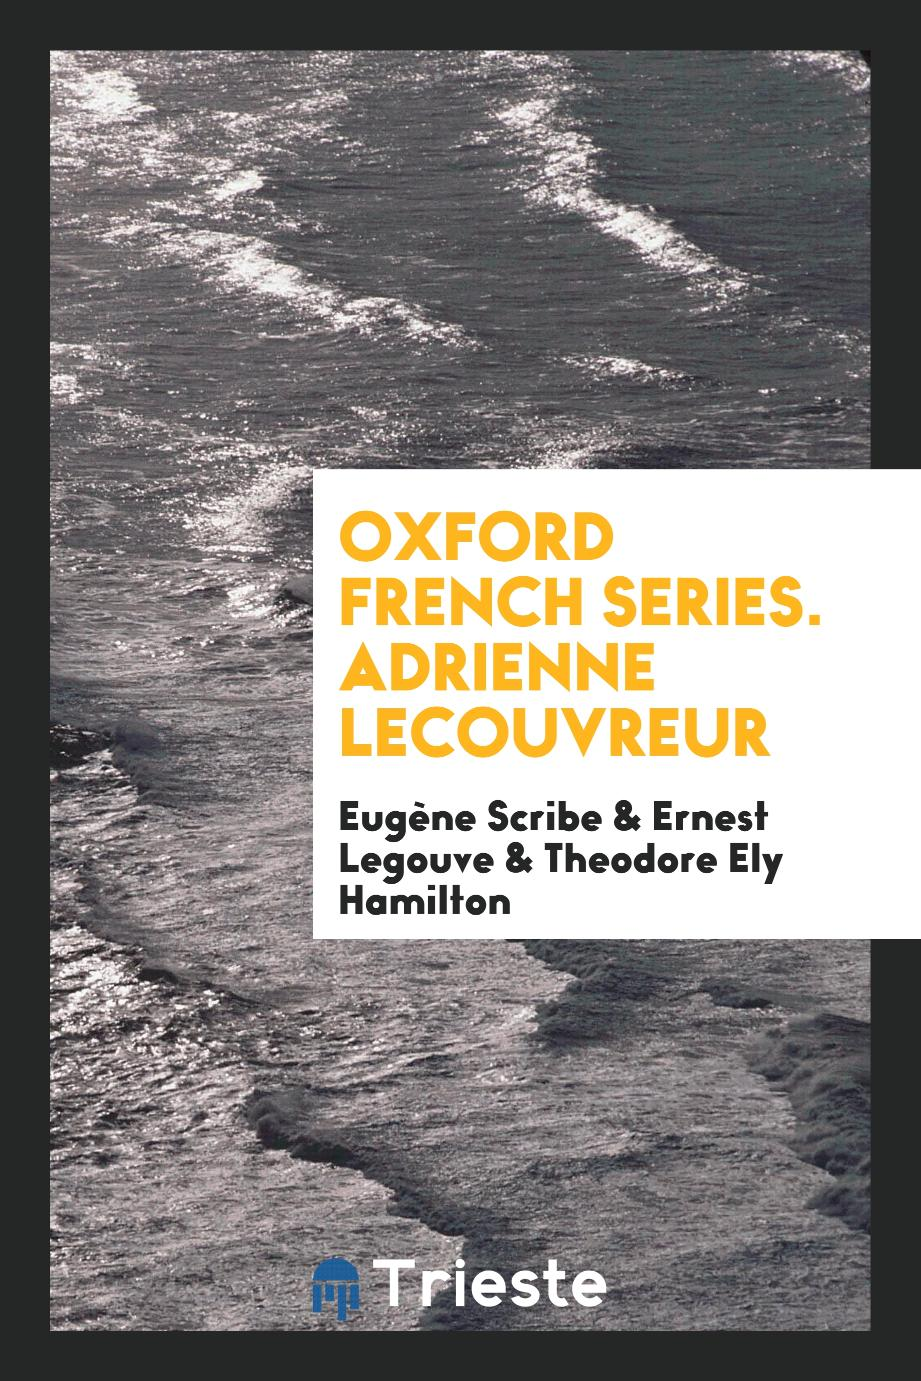 Oxford French Series. Adrienne Lecouvreur